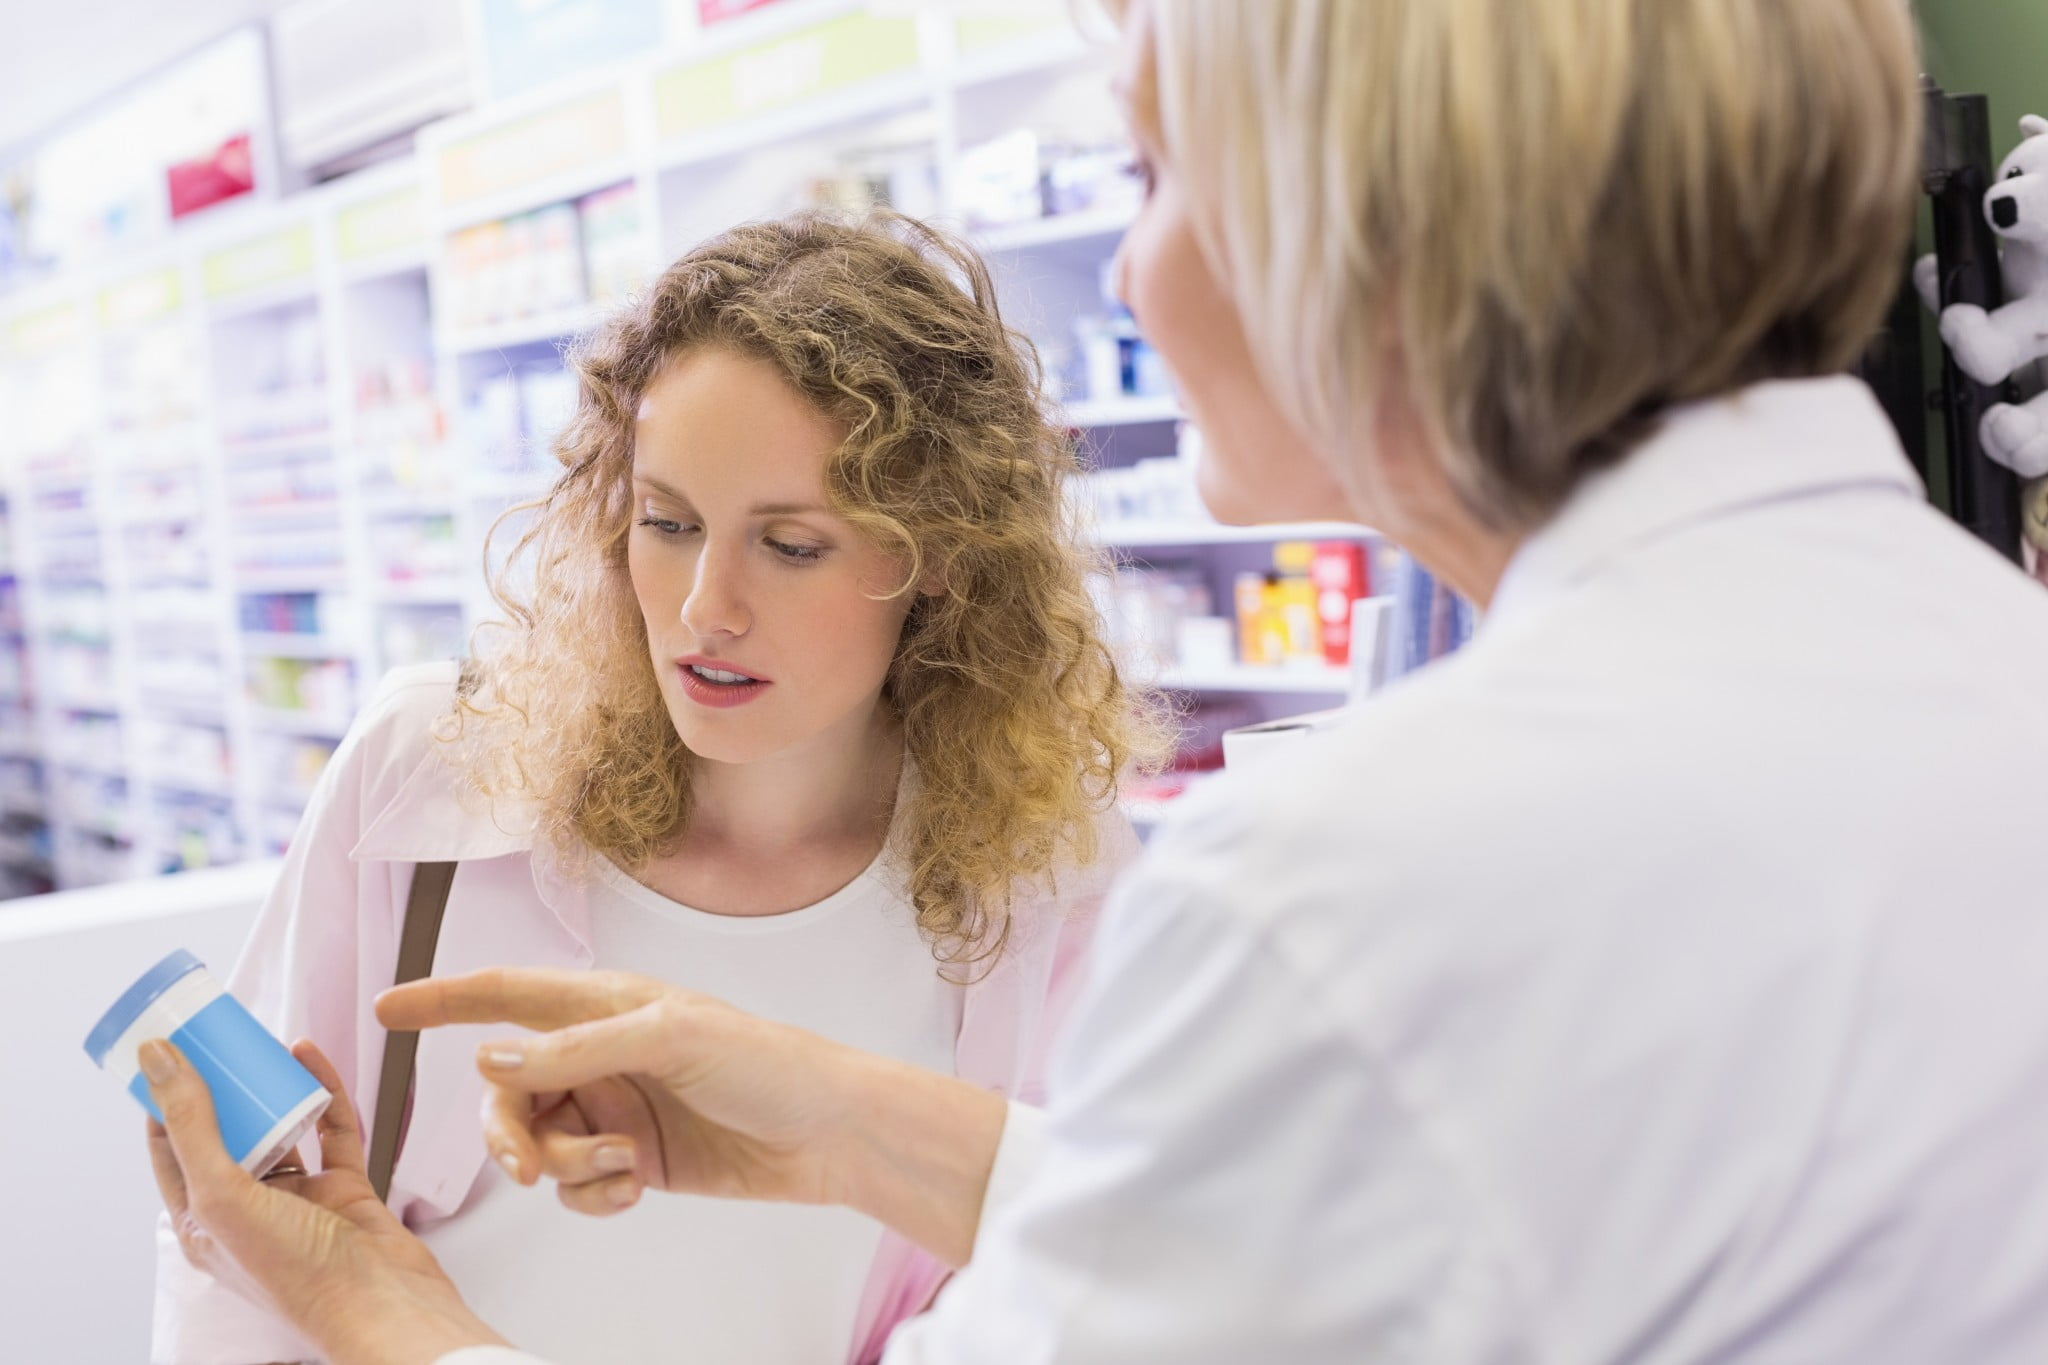 pharmacist services: pharmacist explains medication to female customer